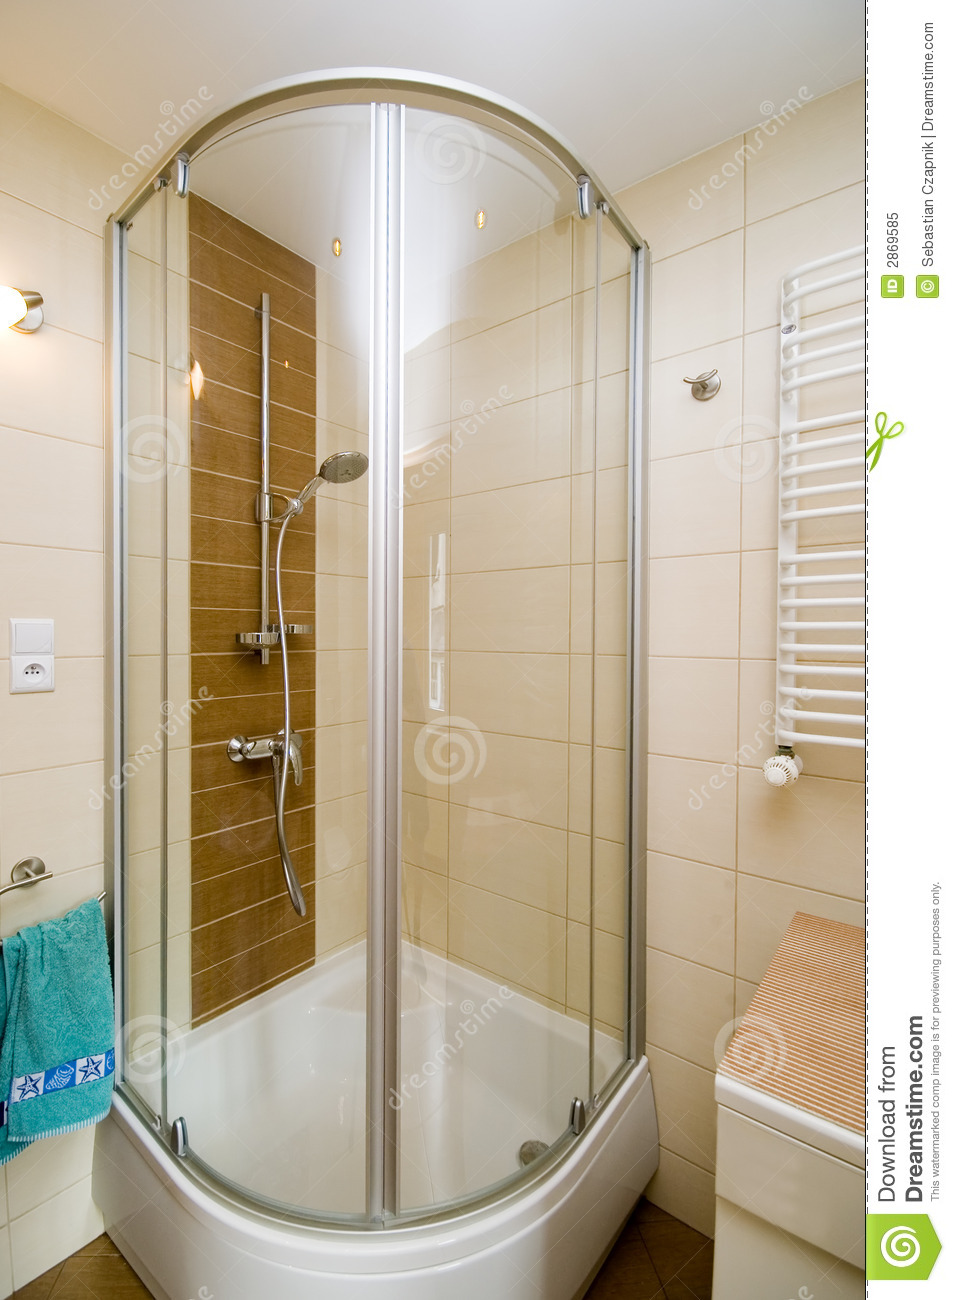 Cabine moderne de douche photo libre de droits image 2869585 for Photos douches modernes